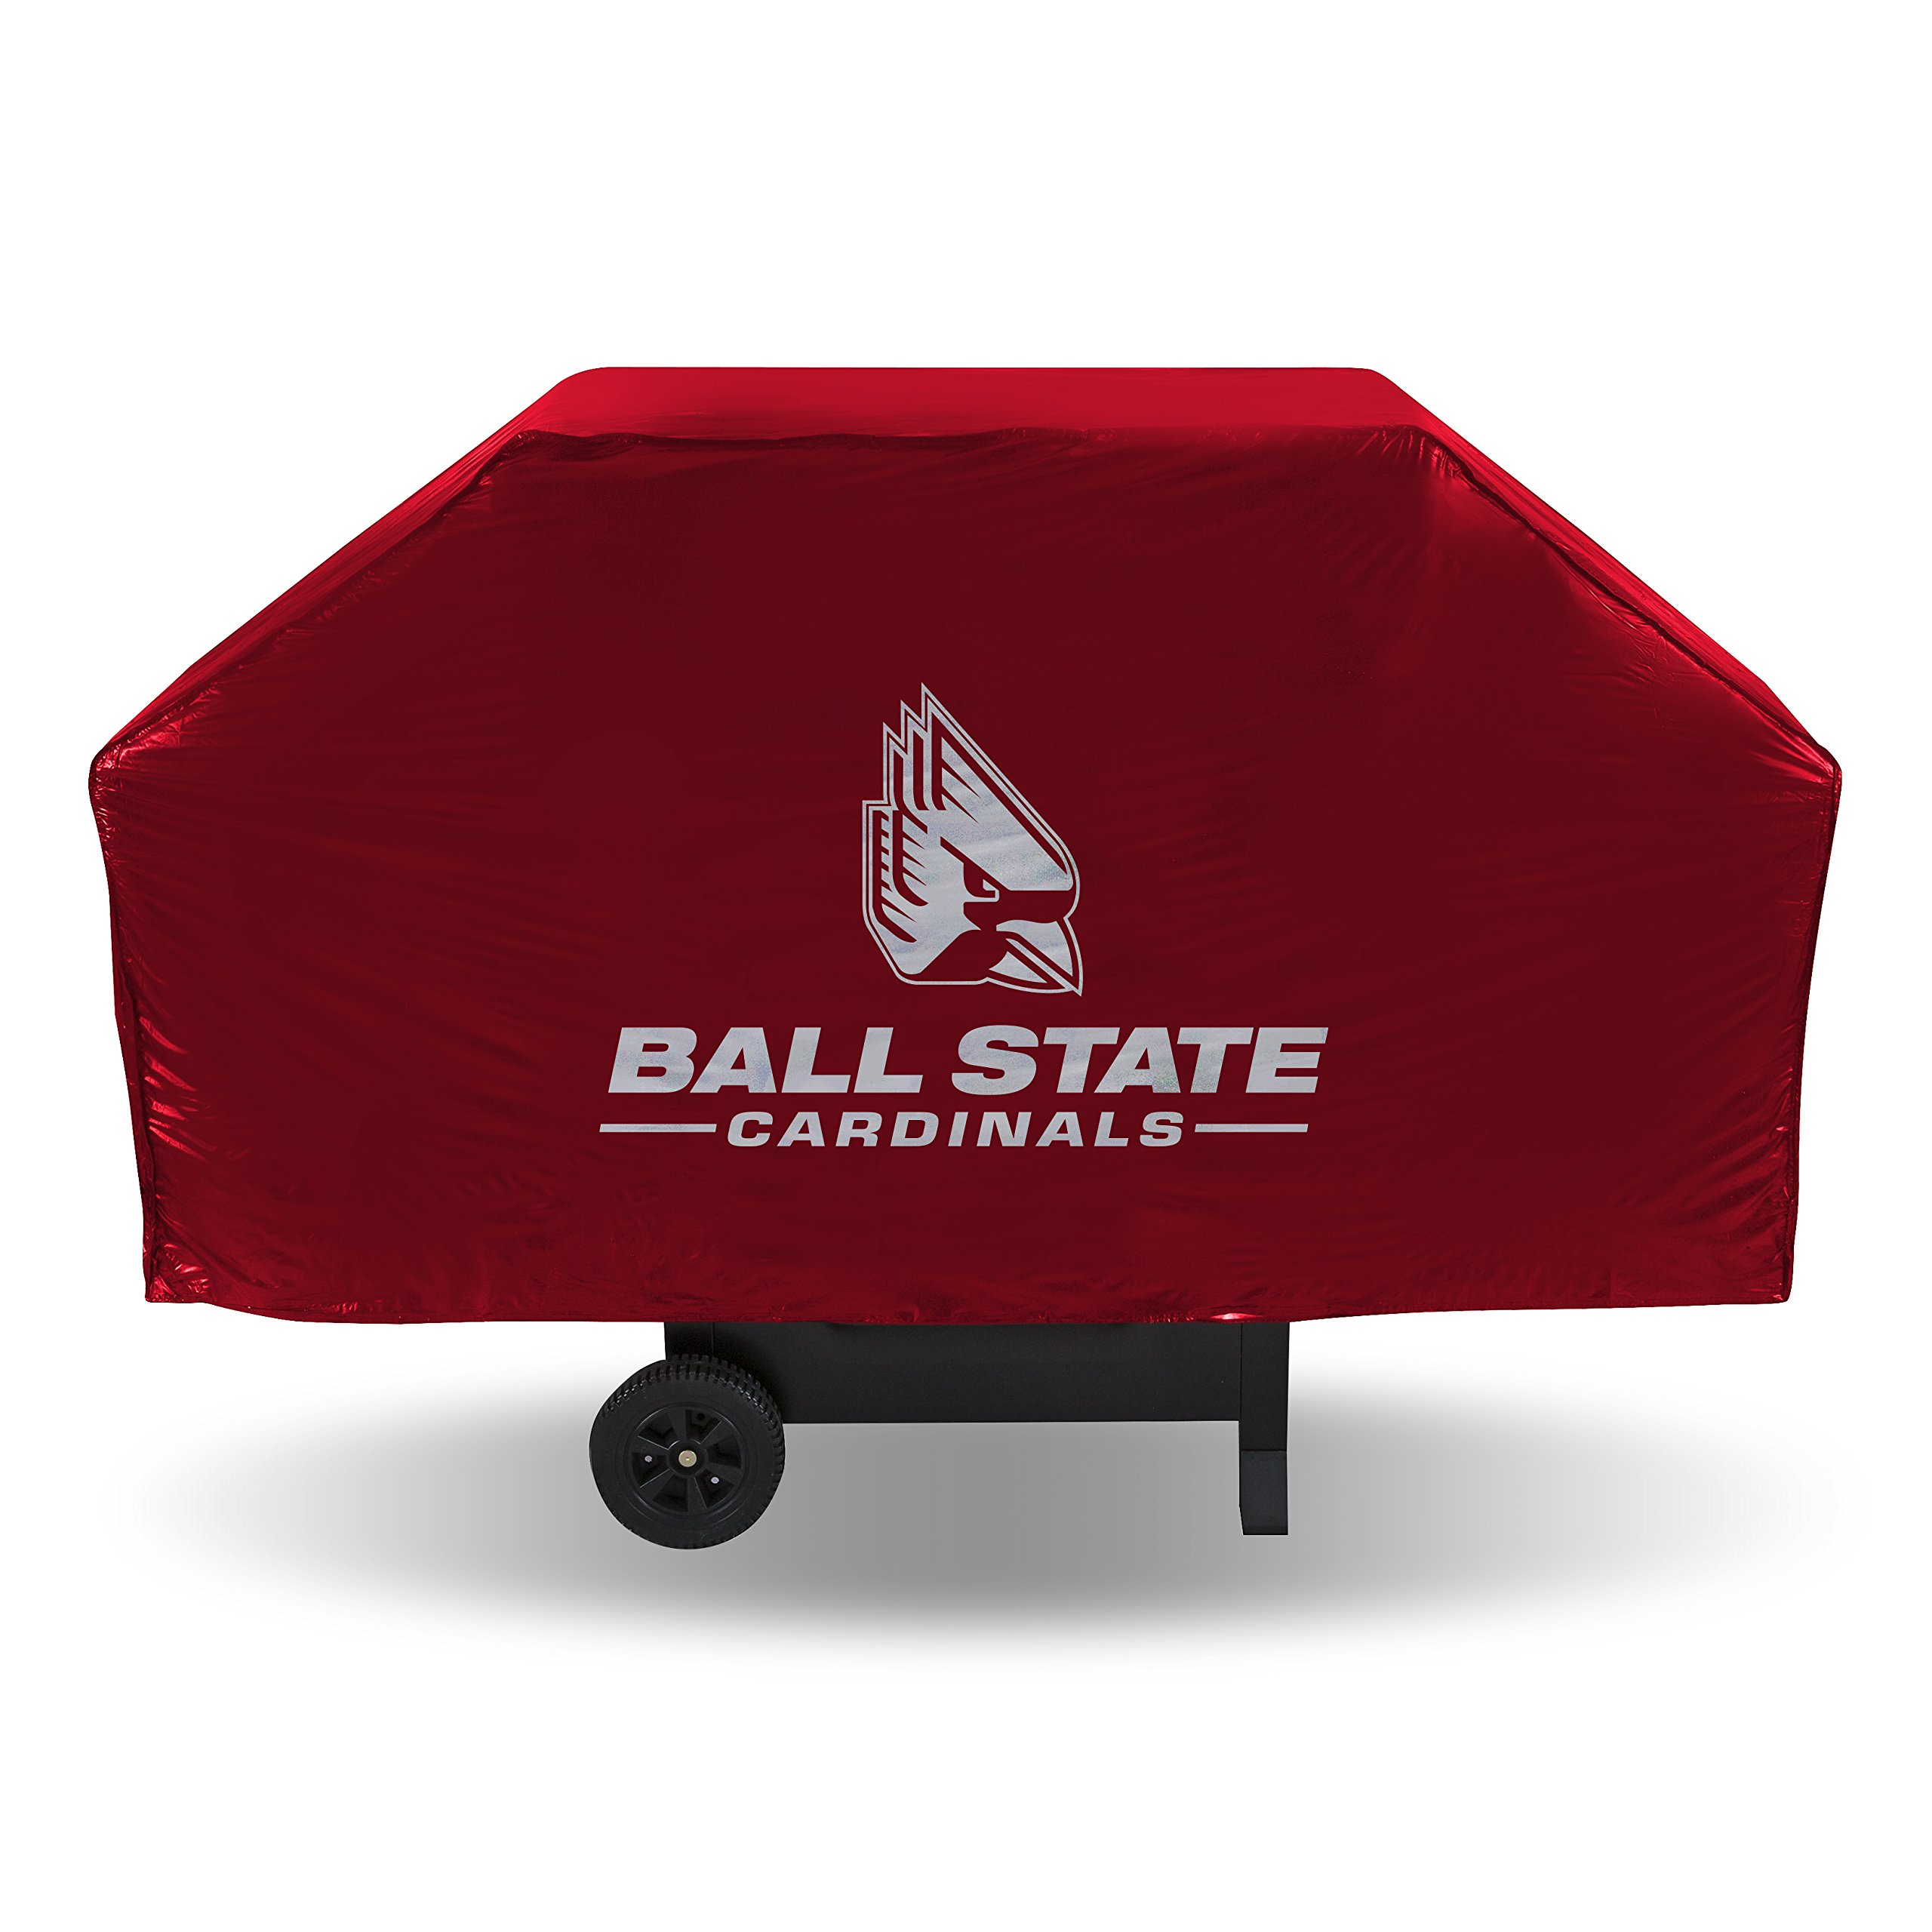 NCAA Ball State Cardinals Vinyl Grill Cover, Red